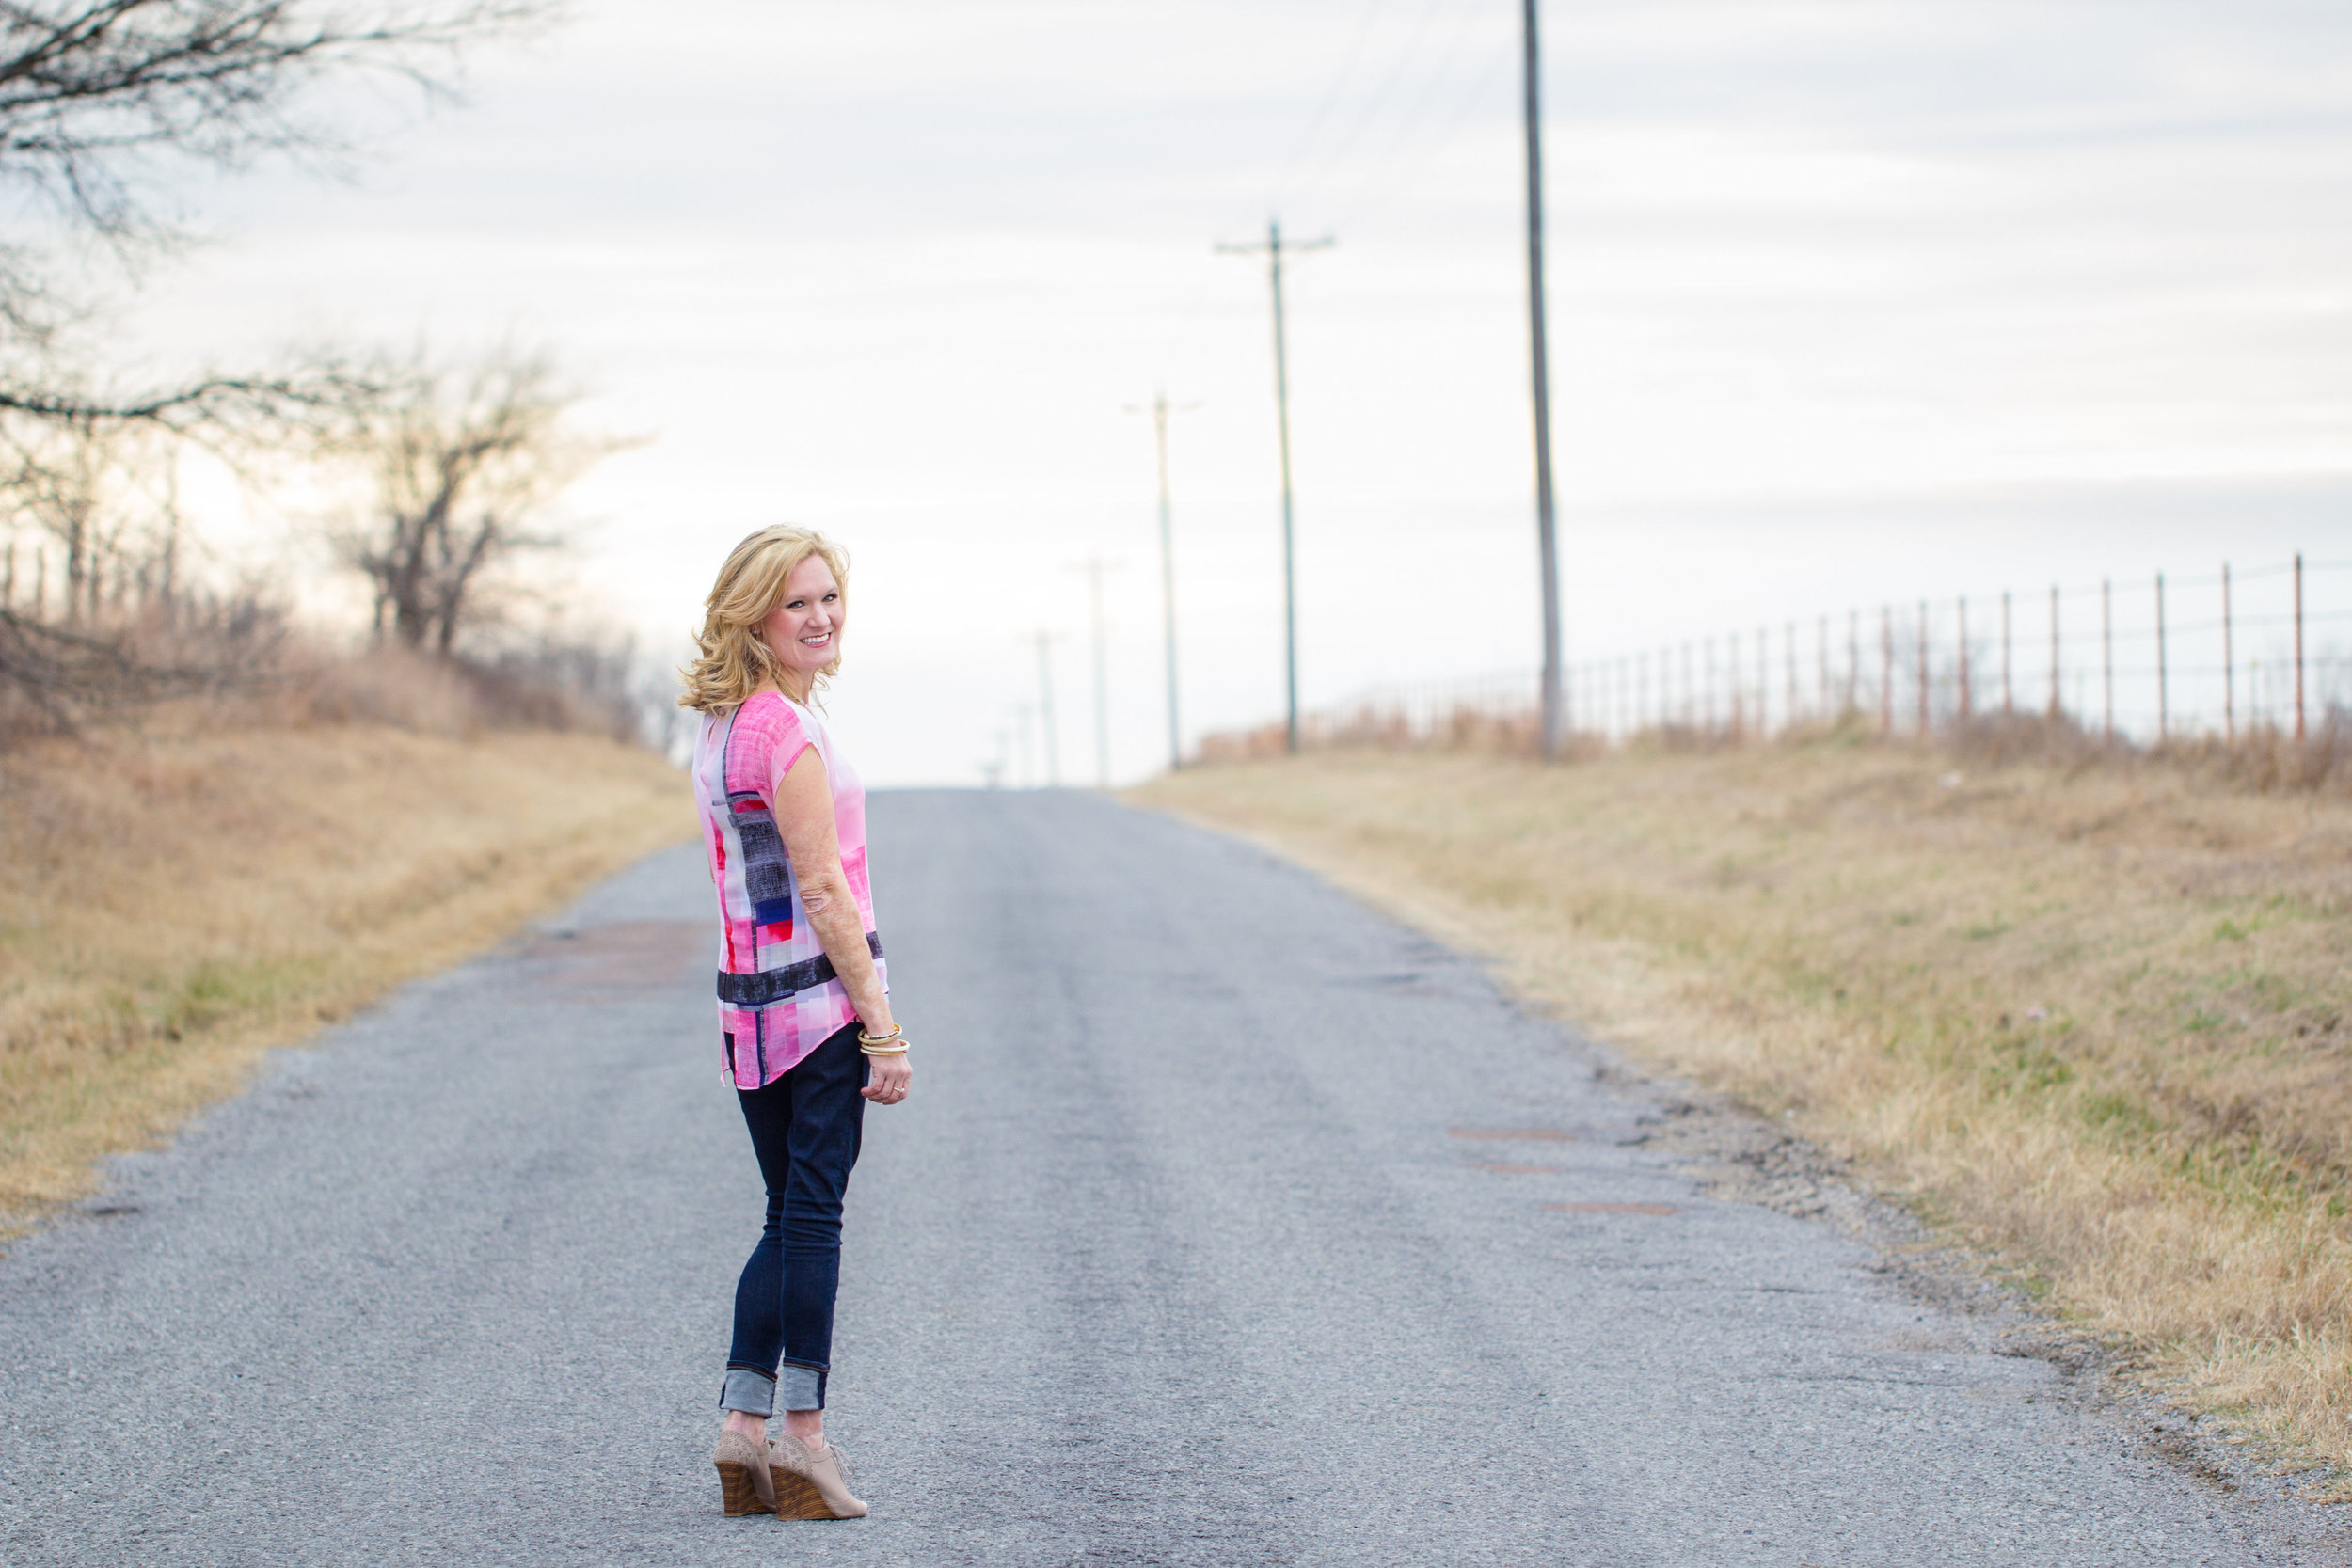 View More: http://malloryhallphotography.pass.us/heathersblessedjourney